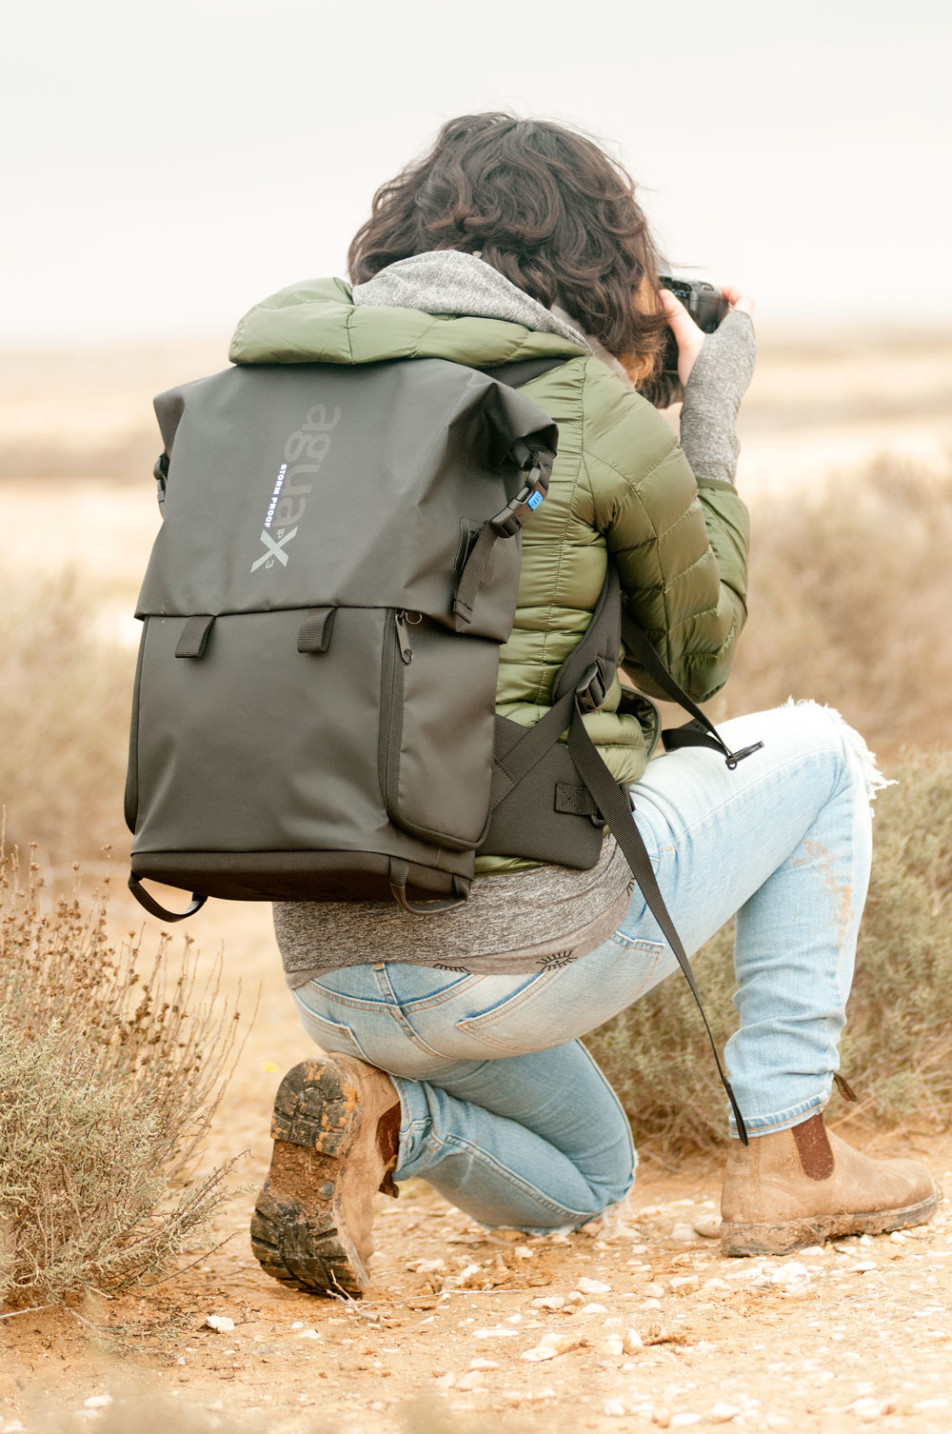 Agua-Stormproof-Backpack_Back-action-952x1434.jpg